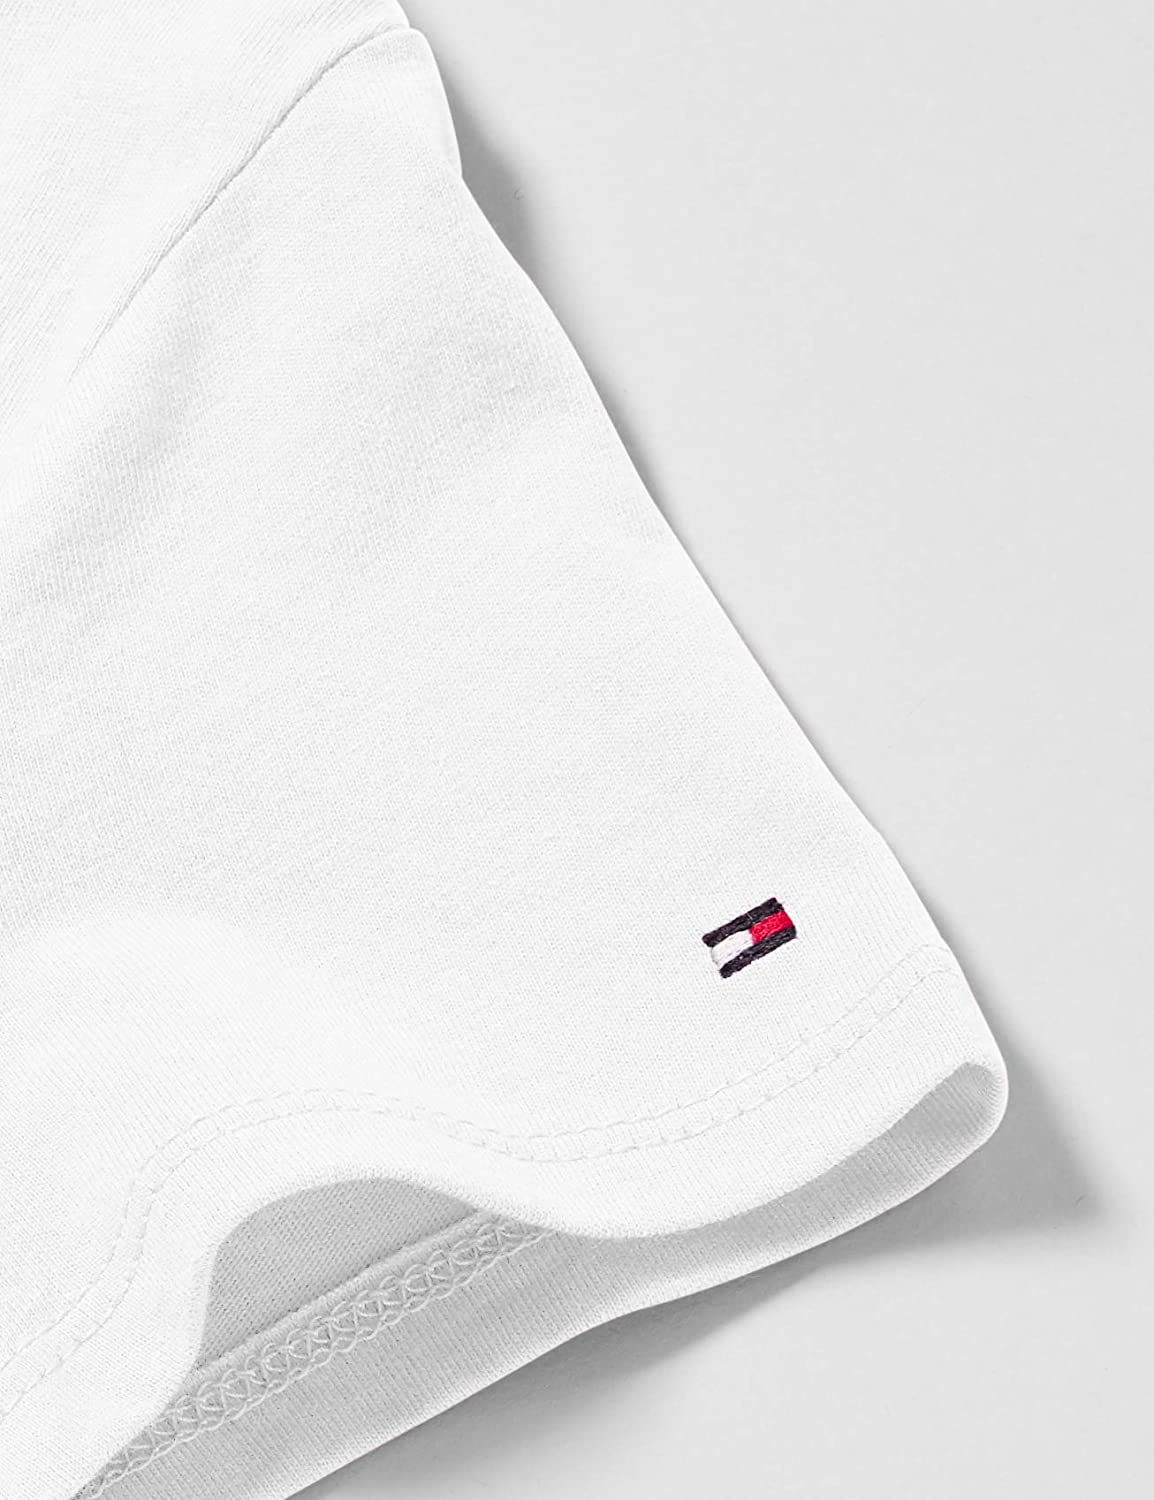 Tommy Hilfiger On Graphic Tee S//S Maglietta Bambina